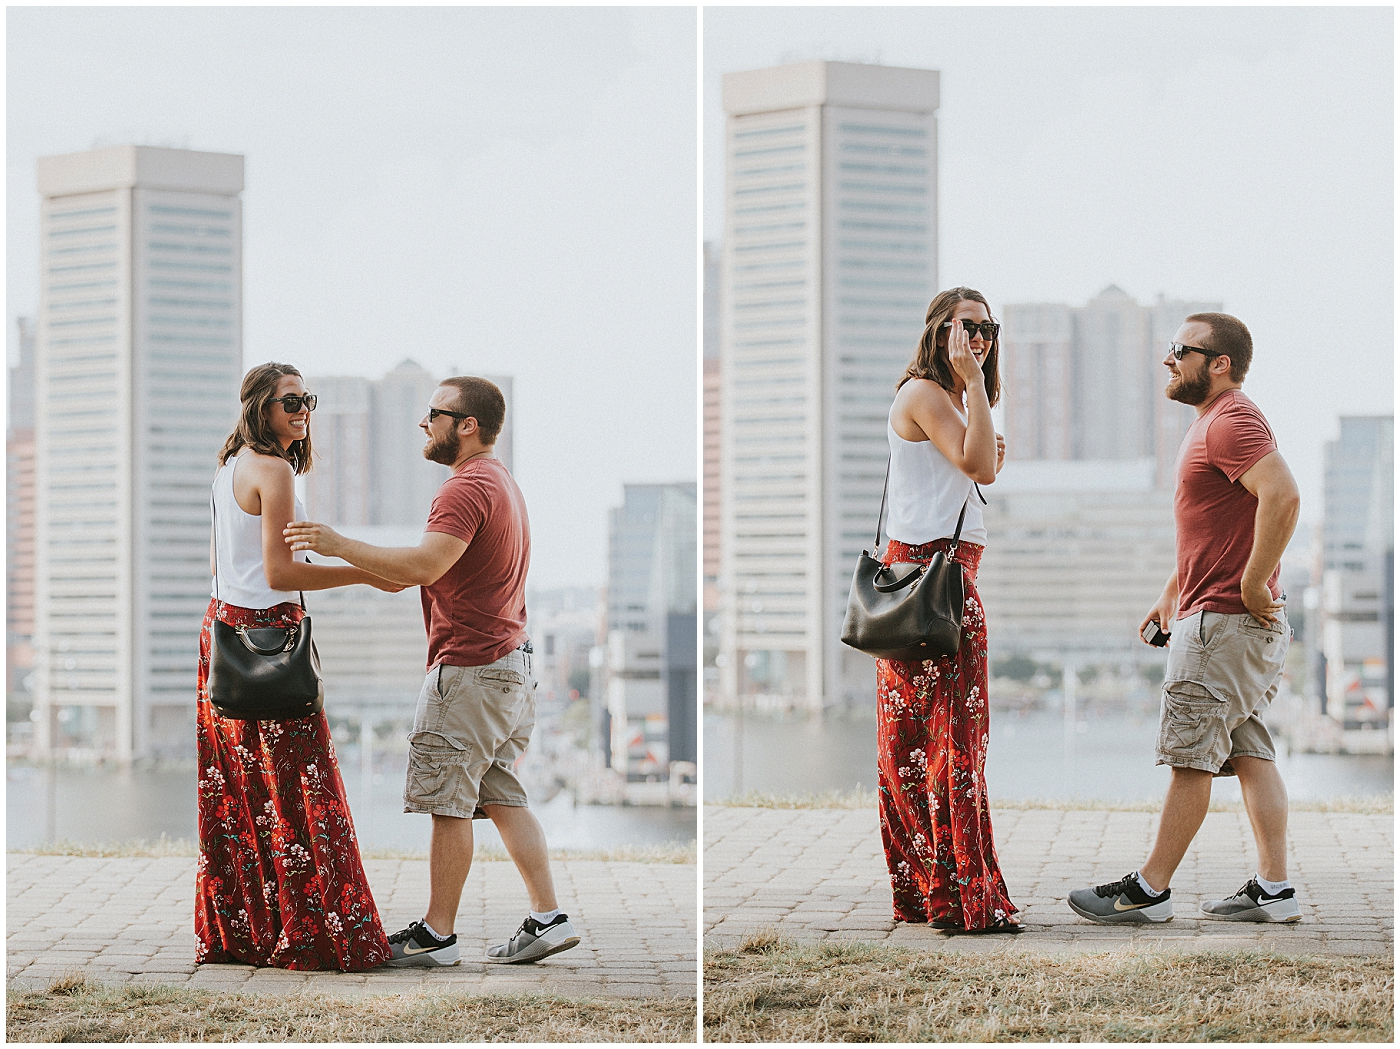 2016-07-24_0015 Our Best Friends' Scenic Proposal at Federal Hill | Haleigh + Mike